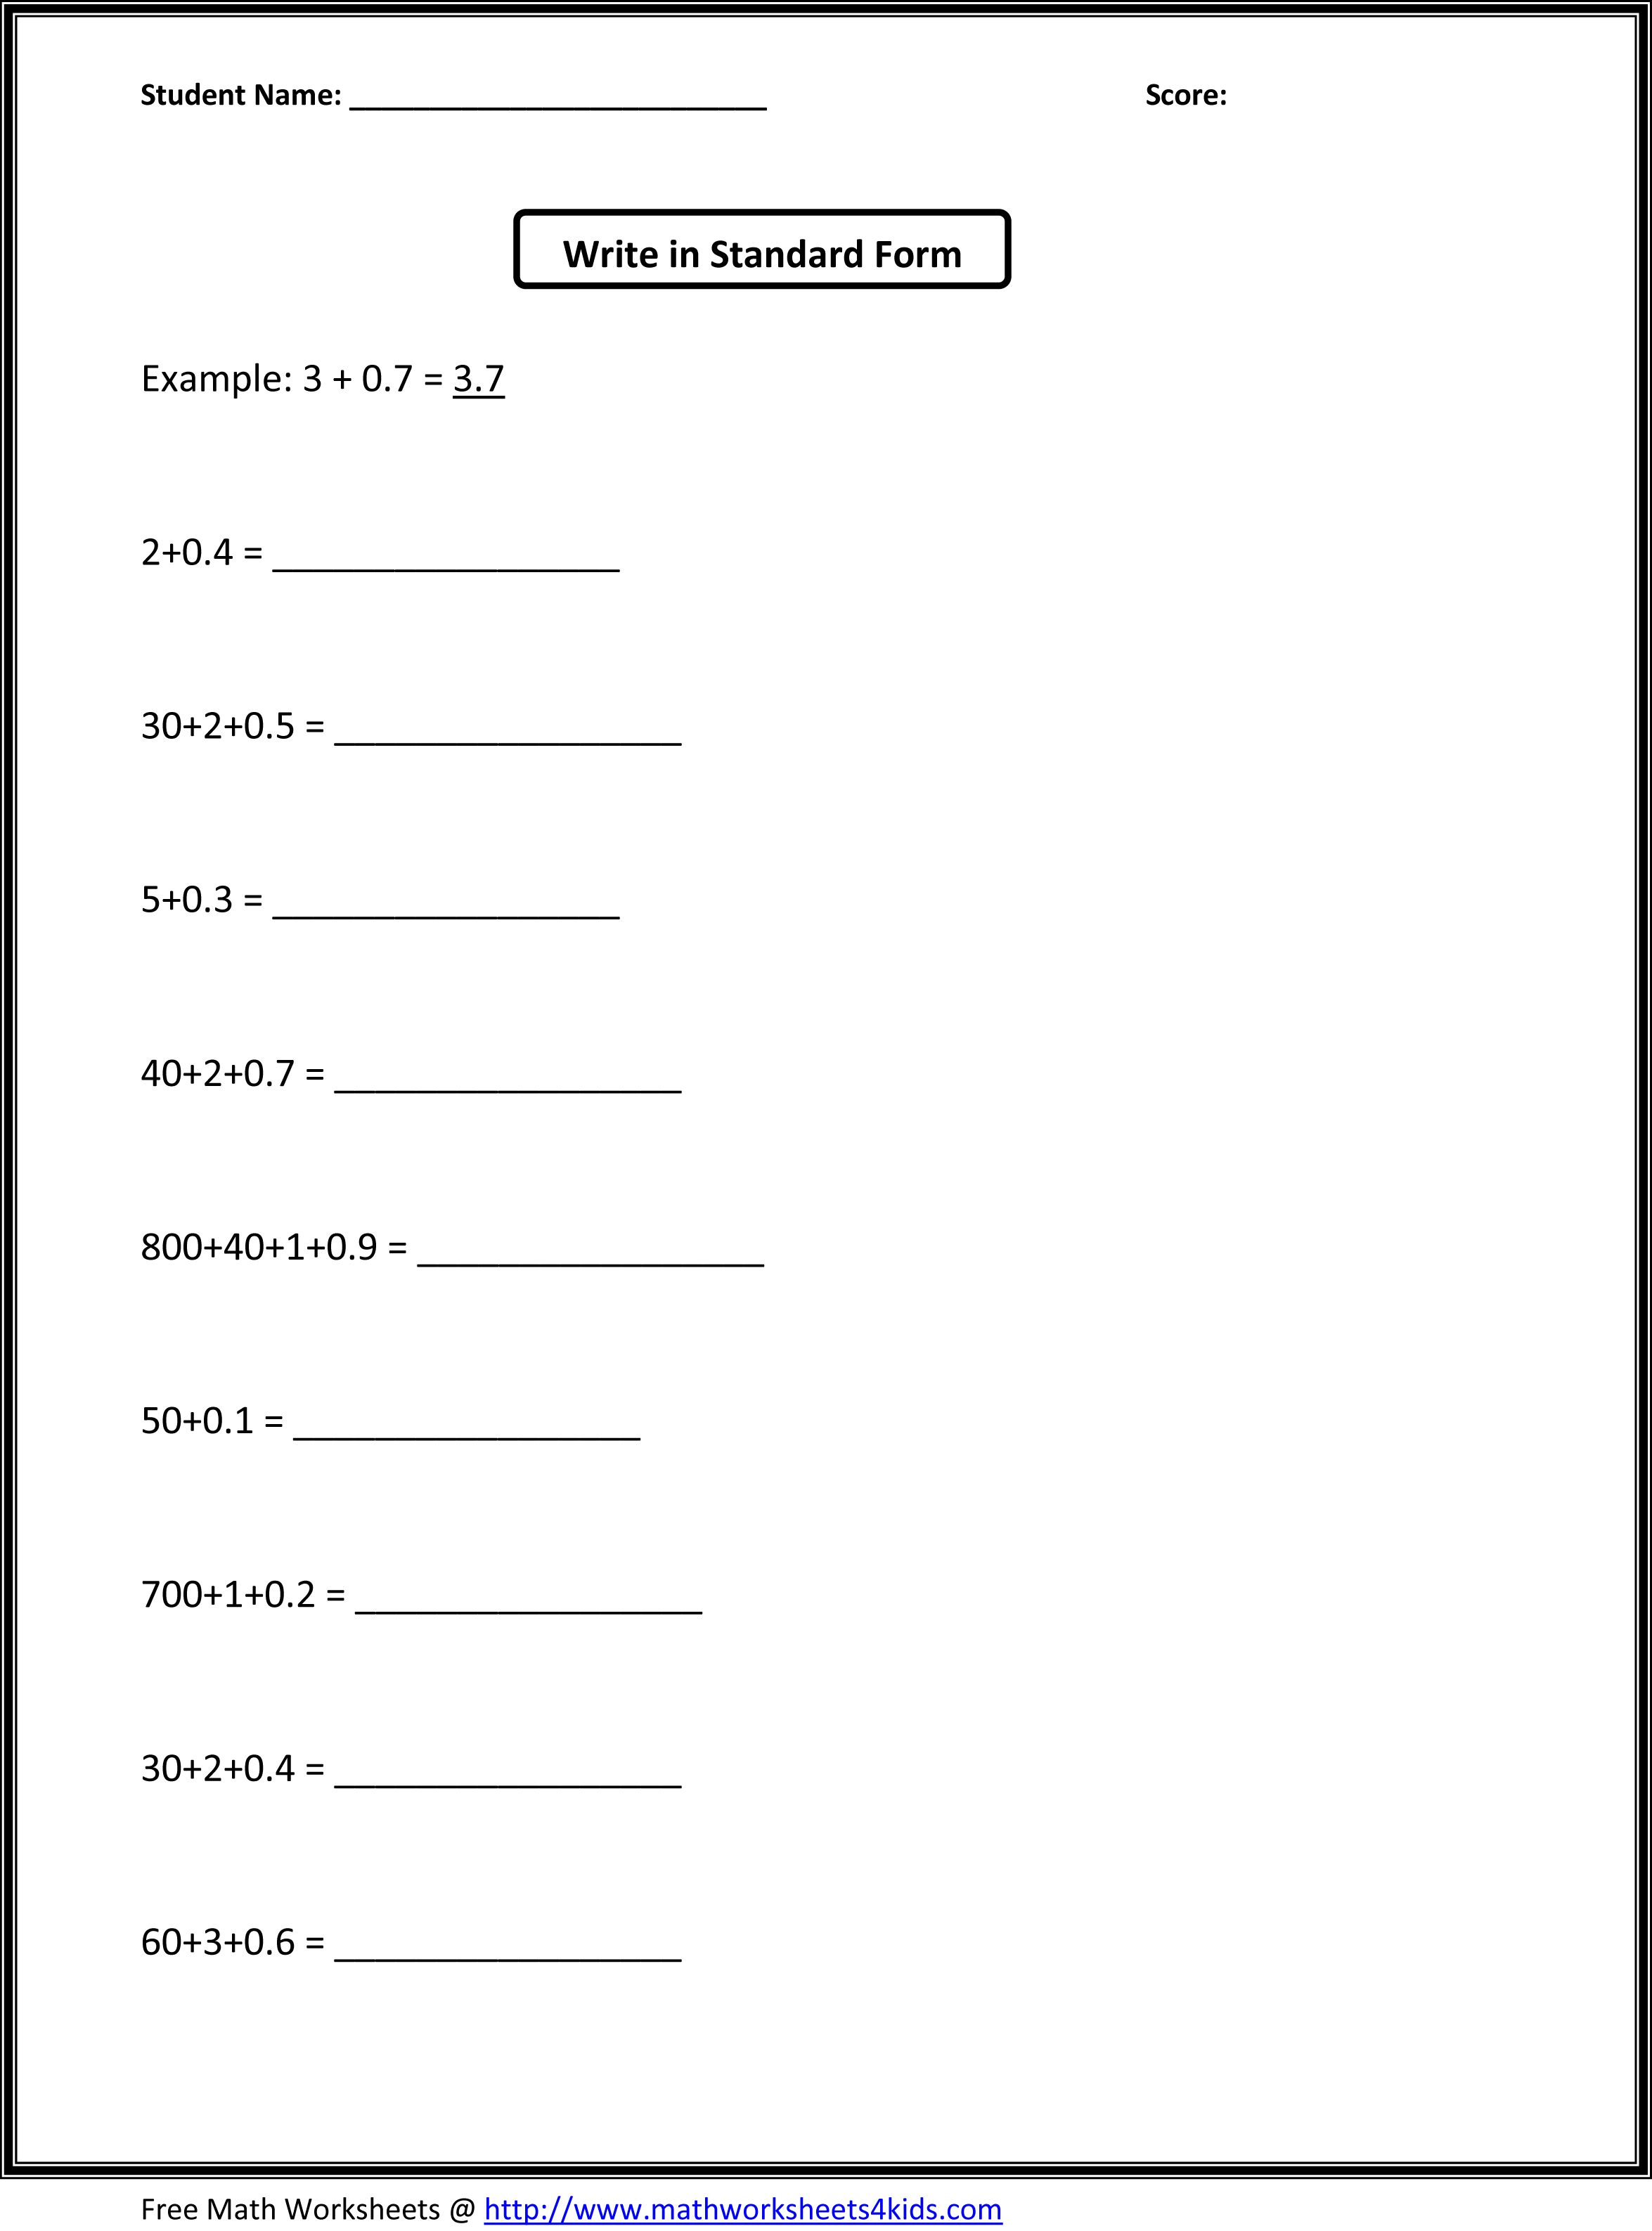 hight resolution of Third Grade Math Worksheets   Free math worksheets